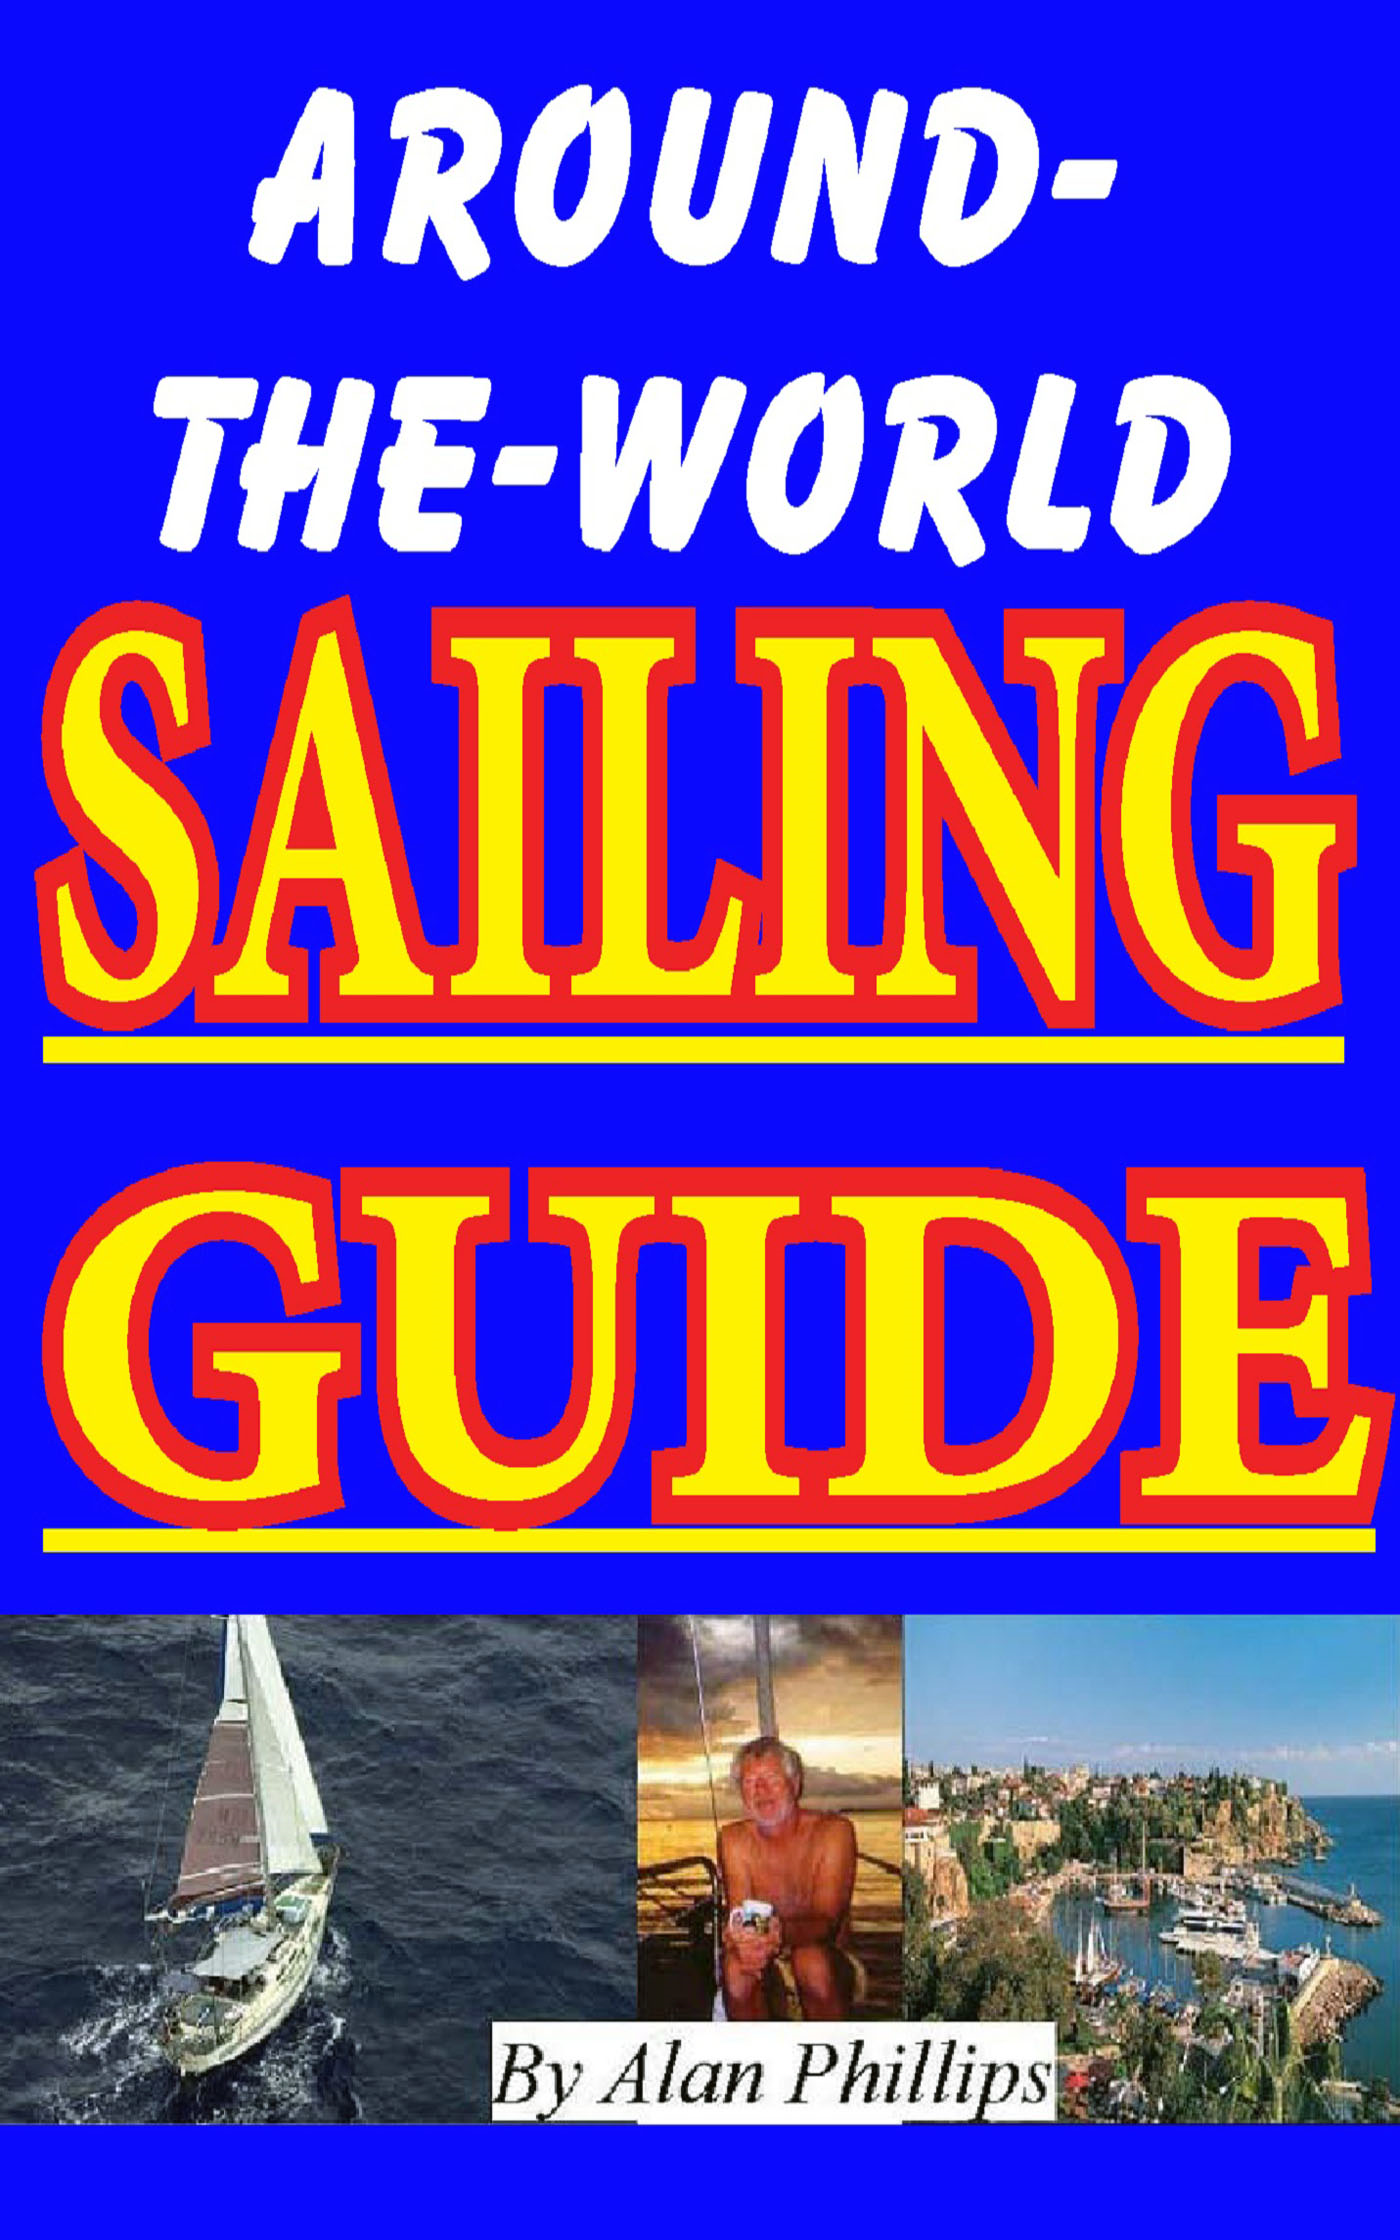 Around-The-World Sailing Guide By: Alan Phillips